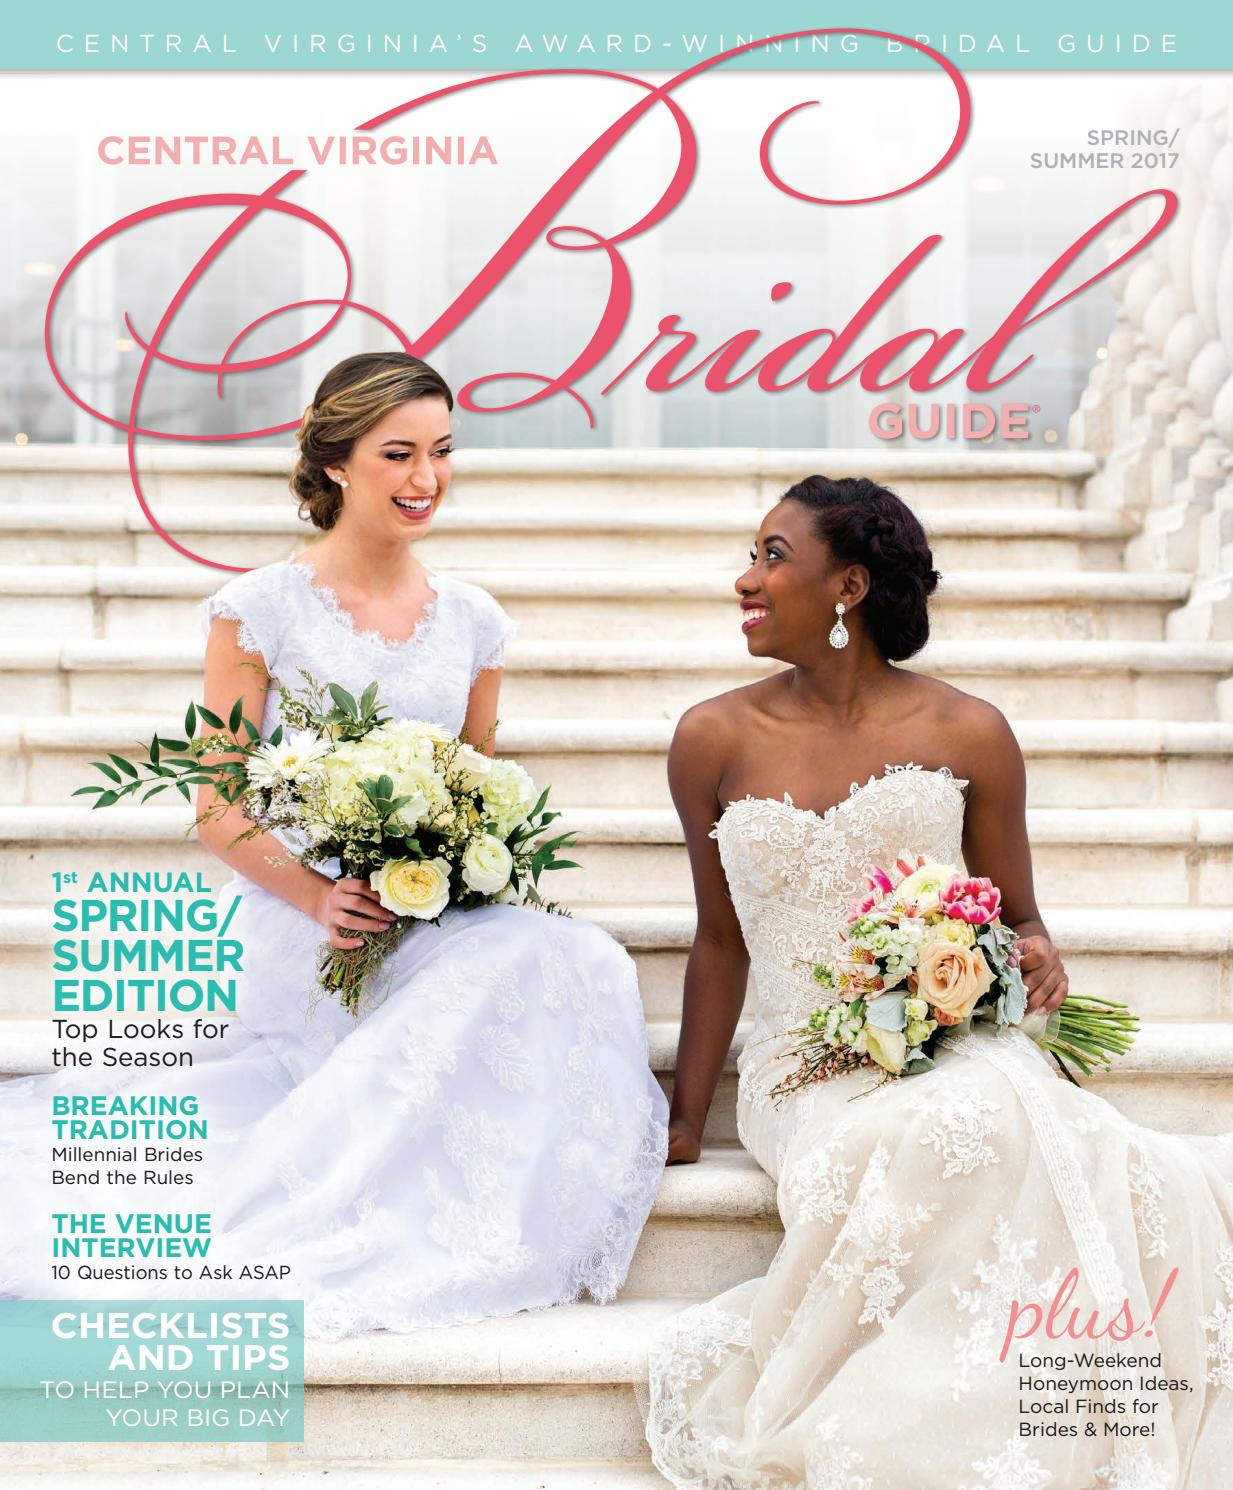 central virginia bridal guide 2017 by vistagraphics issuu